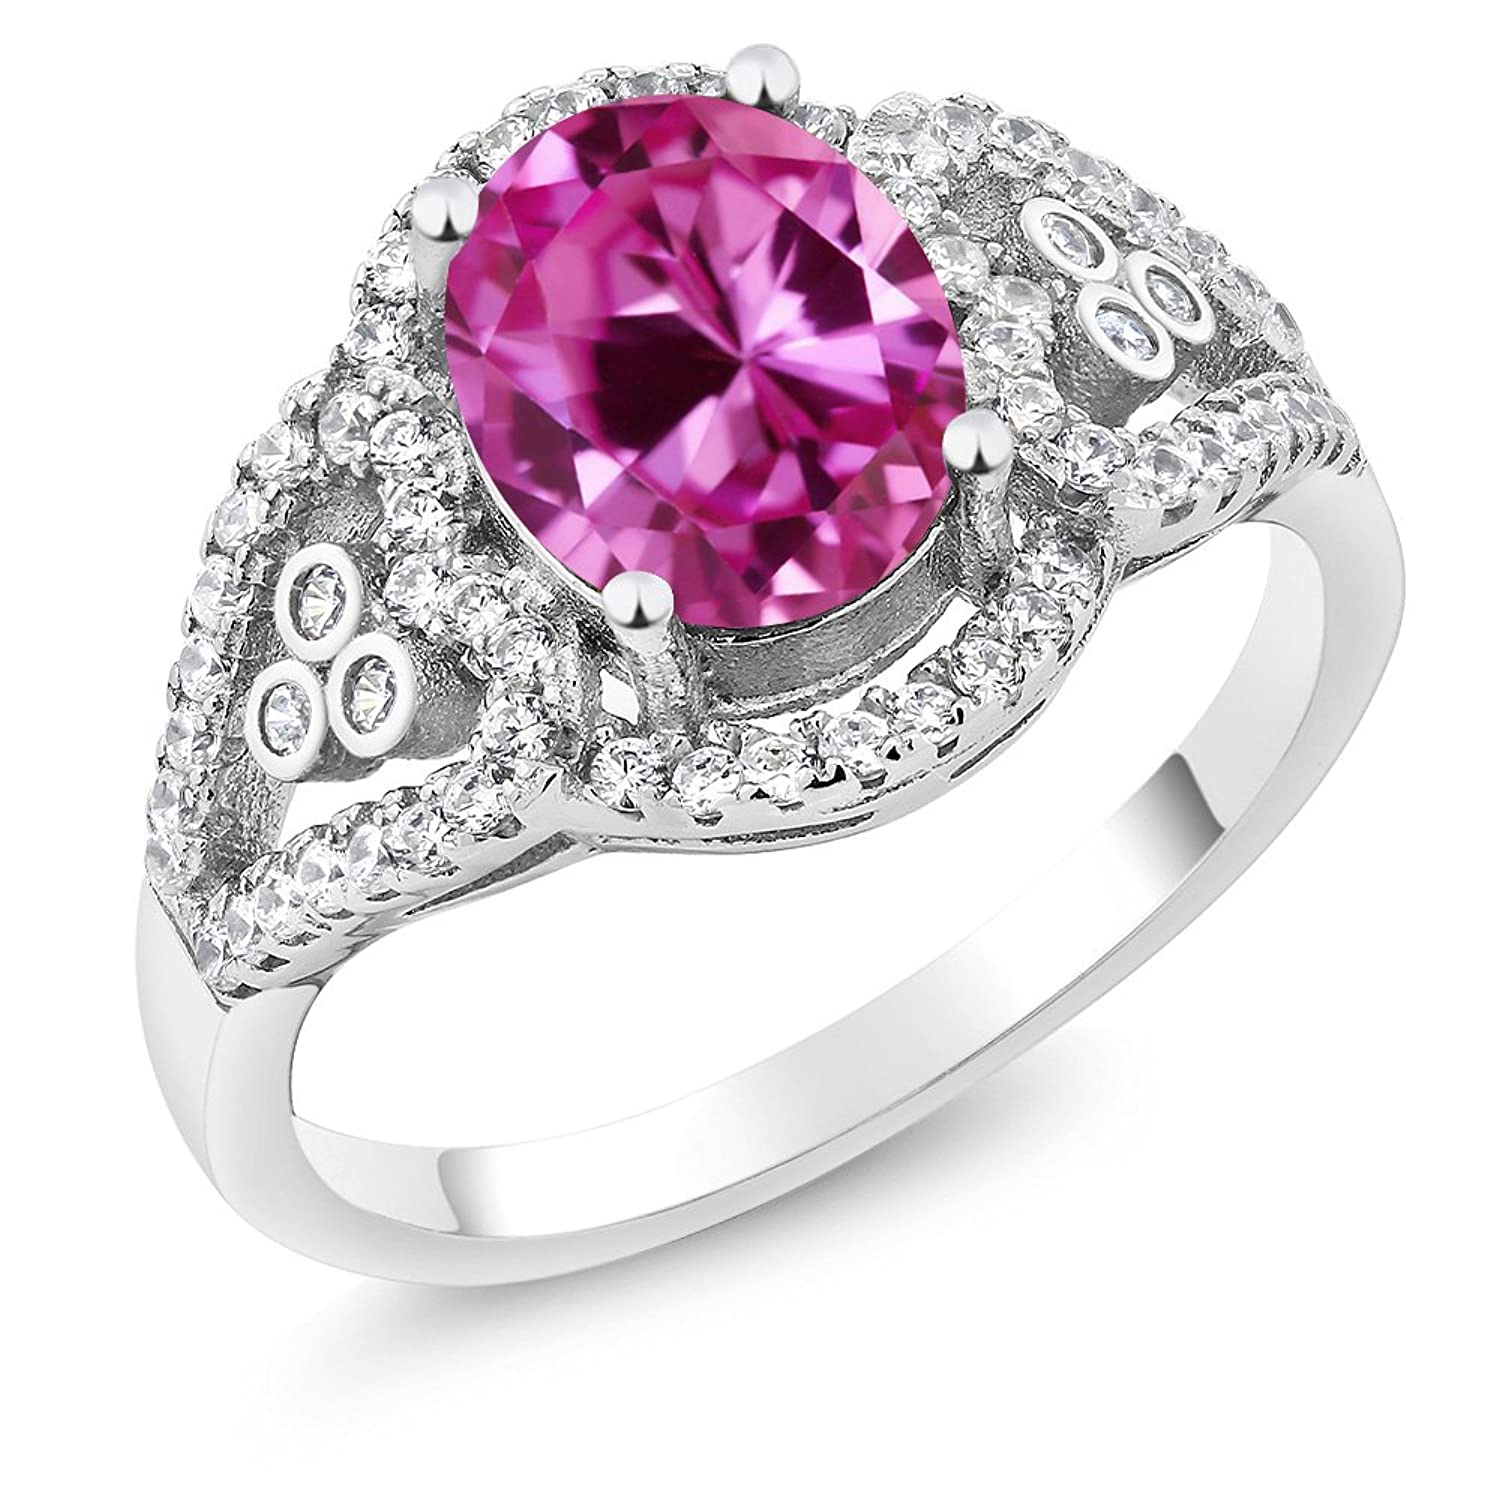 2.42 Ct Oval Pink Created Sapphire 925 Sterling Silver Ring